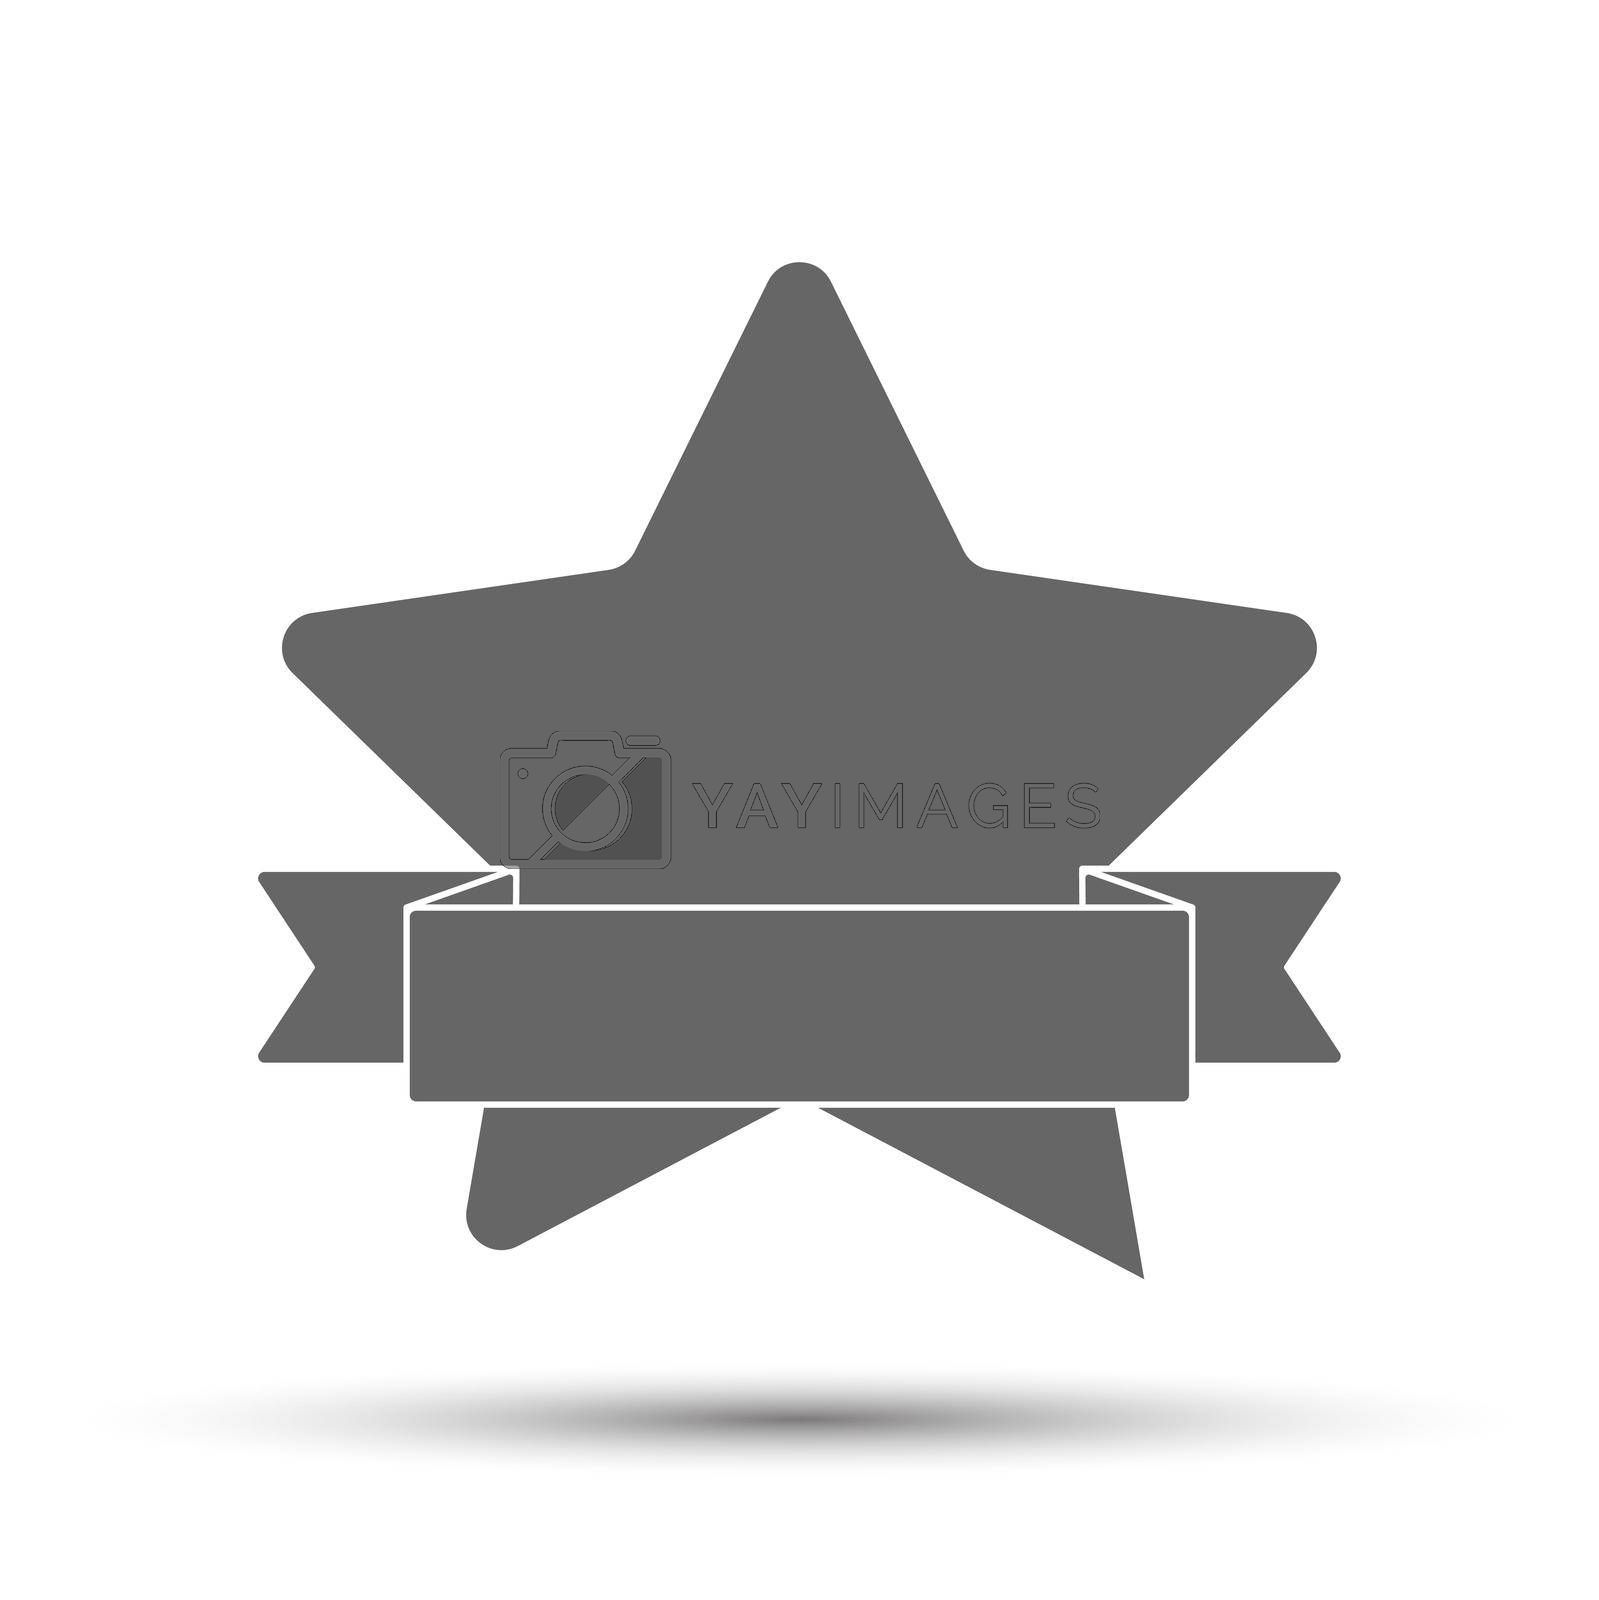 Silhouette of a five-pointed star with a ribbon. Vector illustration for scrapbooking and creative design. Flat style.